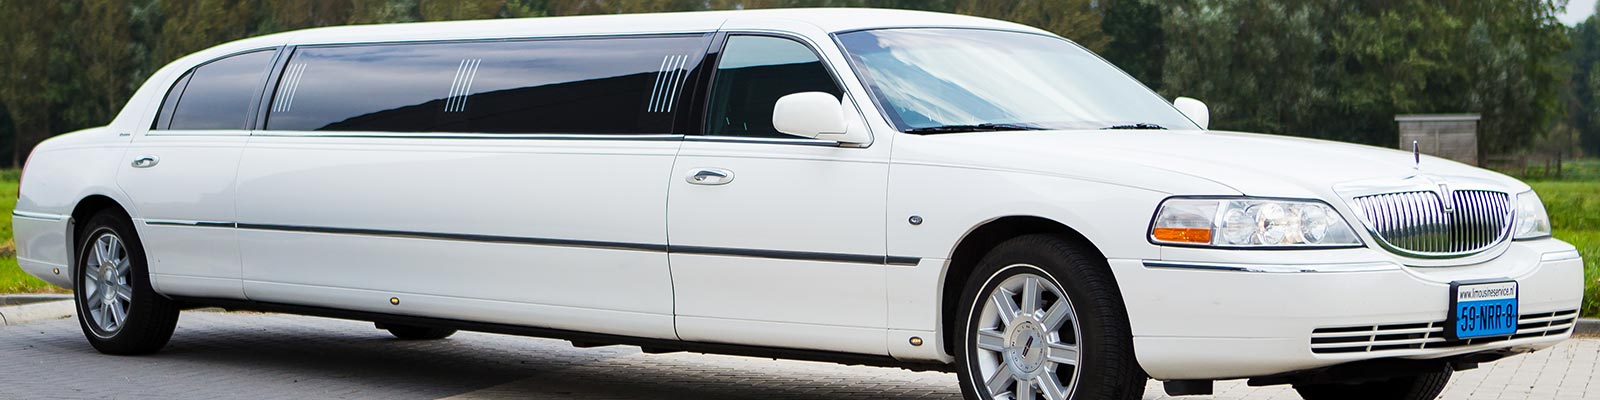 lincoln-limousine-wit